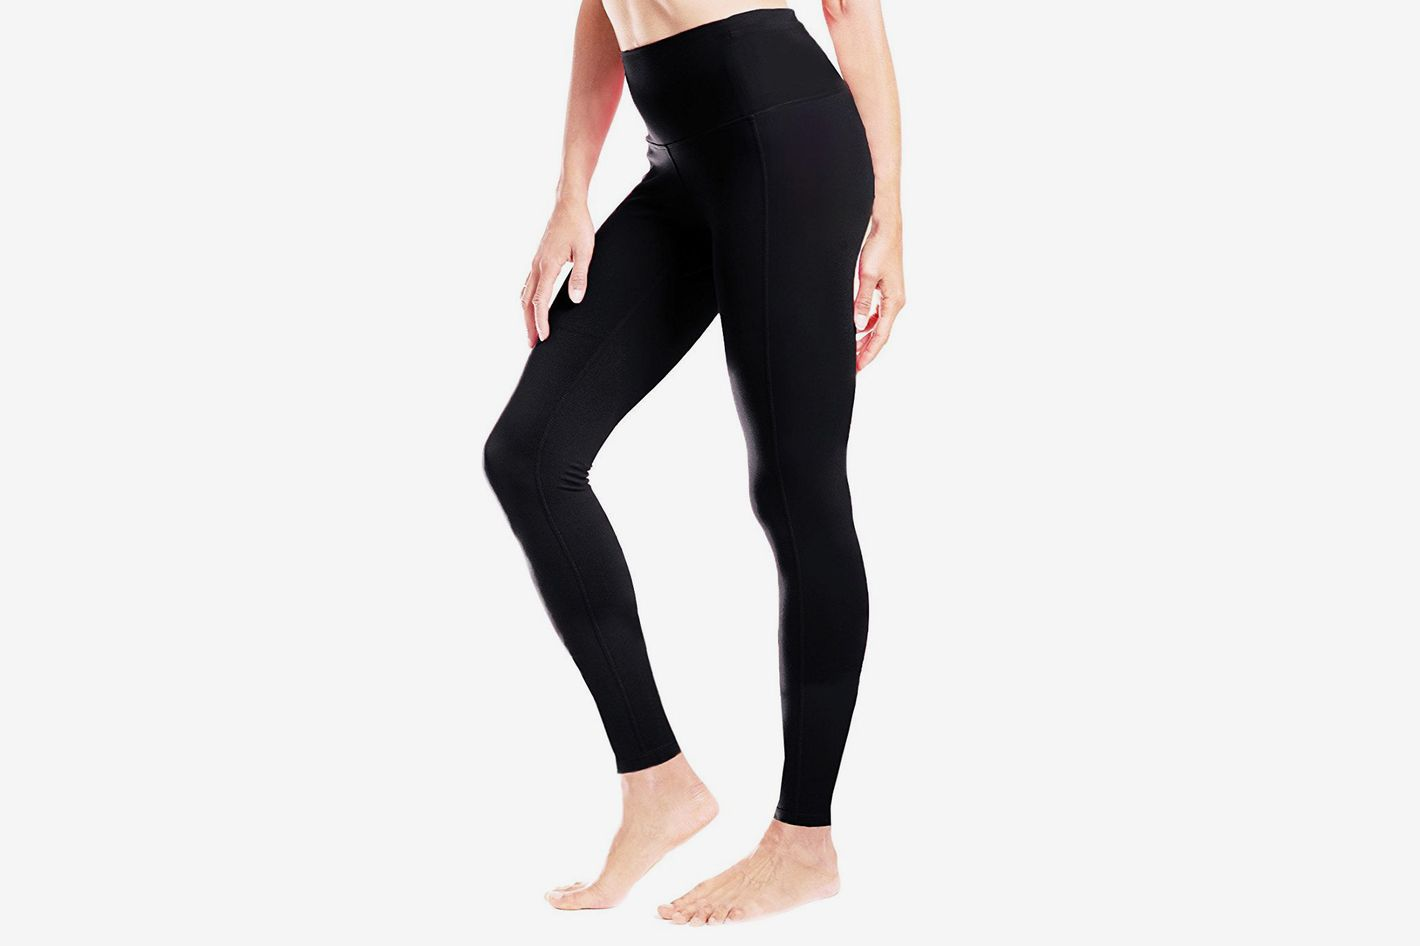 5e77afb5d9b0b Yogipace Petite Length High Waisted Yoga Leggings